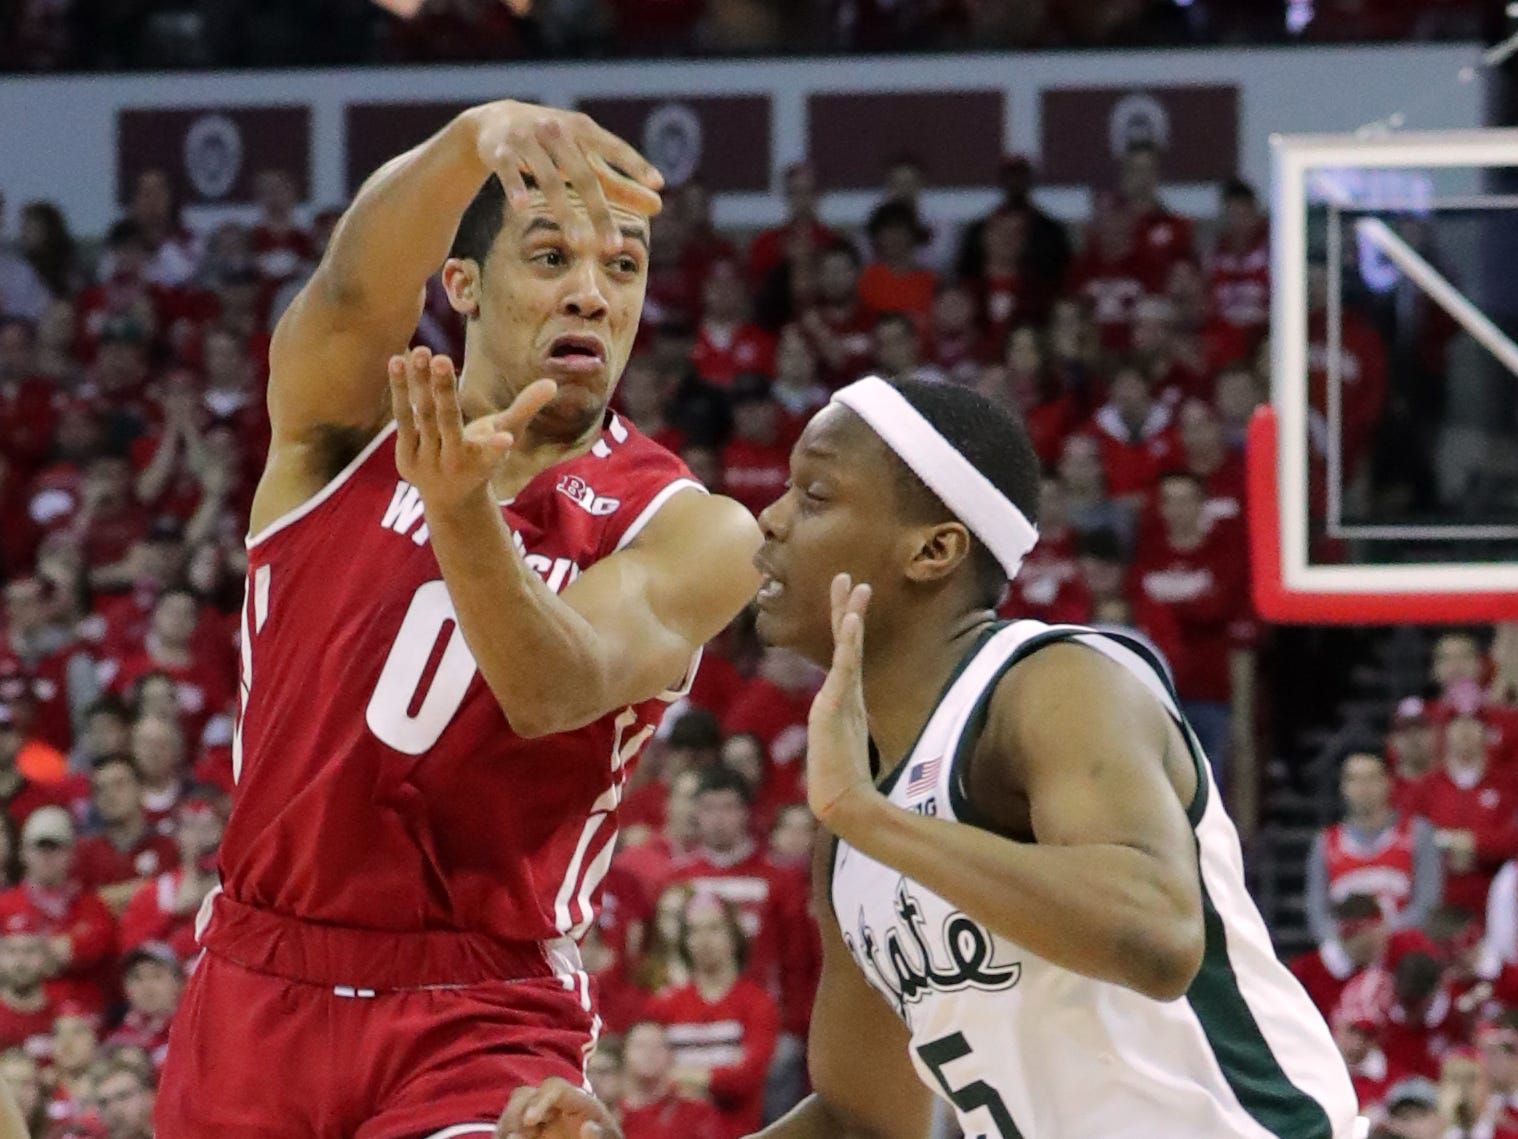 Wisconsin's D'Mitrik Trice finds an open man while being guarded by Cassius Winston.